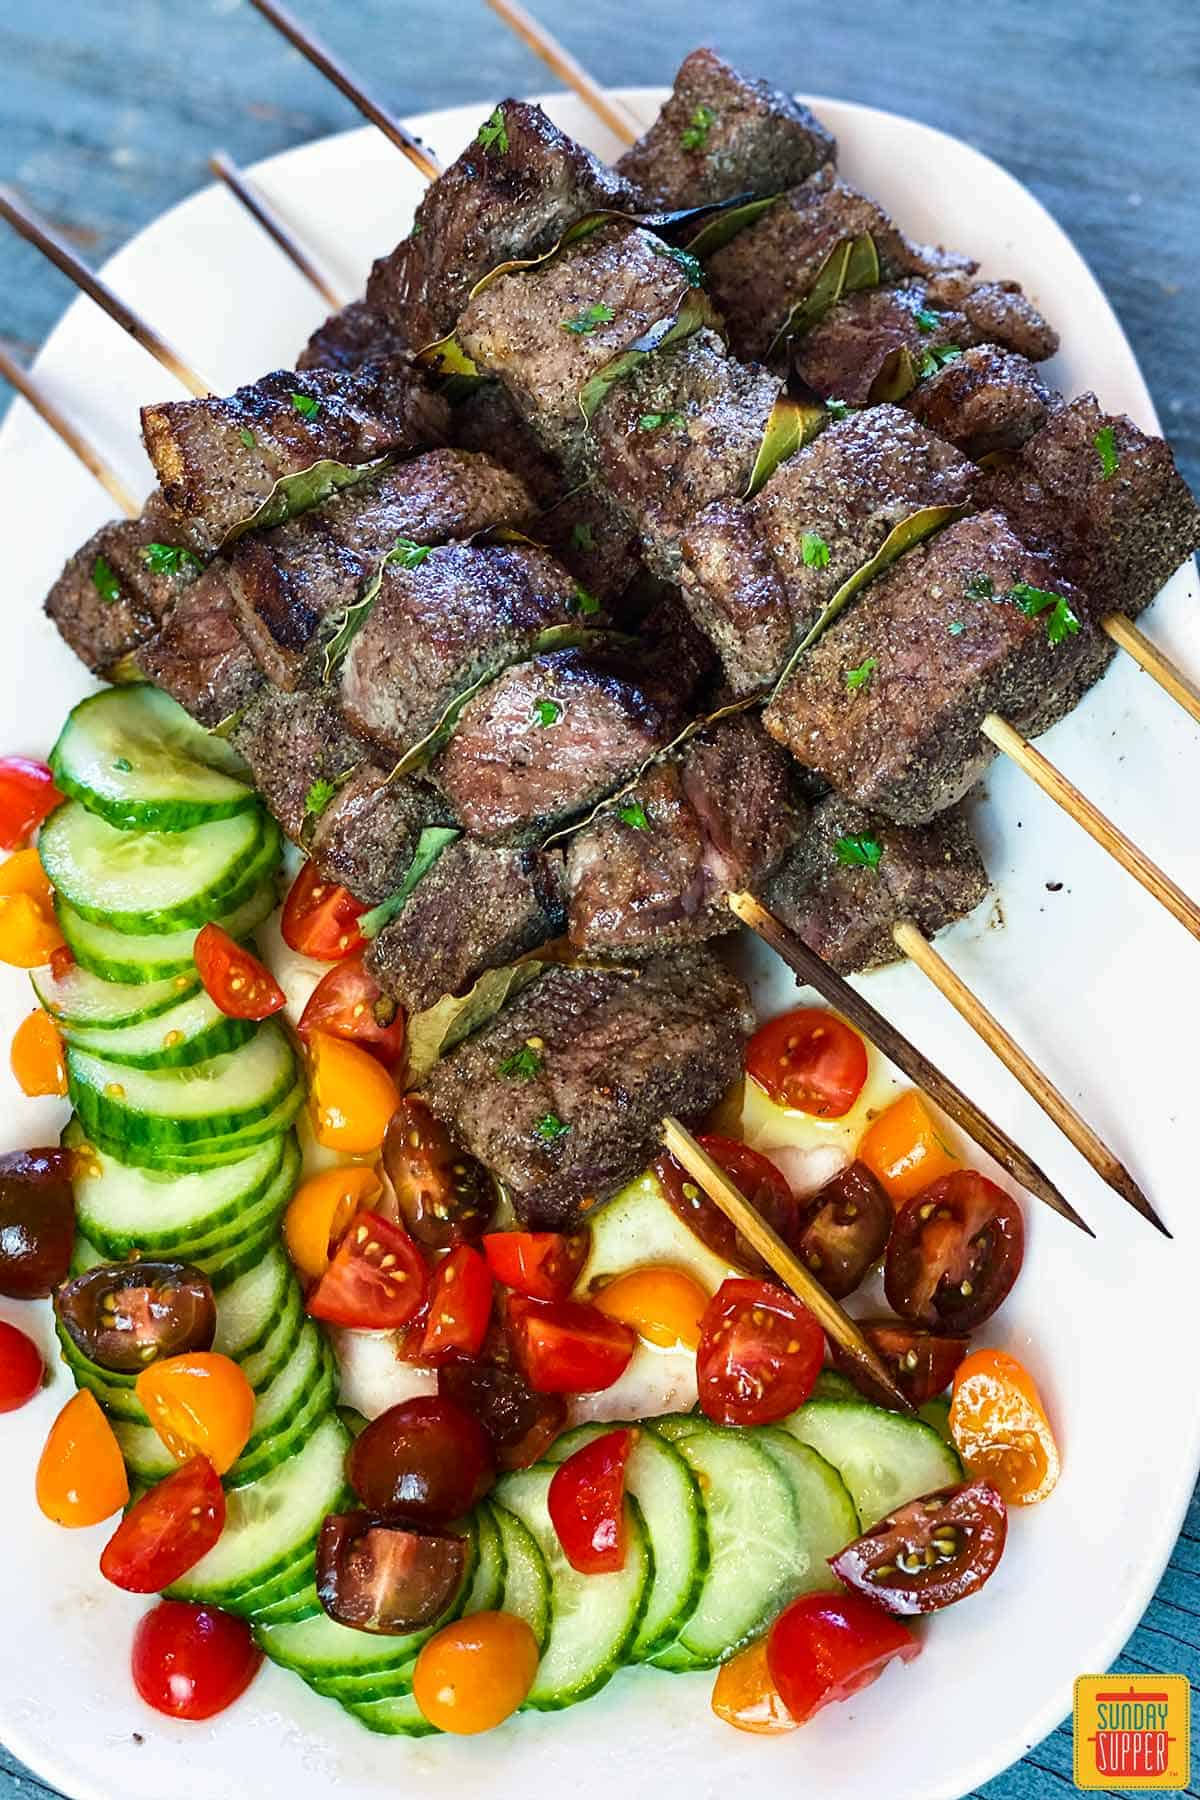 Overhead shot of Portuguese beef skewers on a white platter with tomato cucumber salad on the side